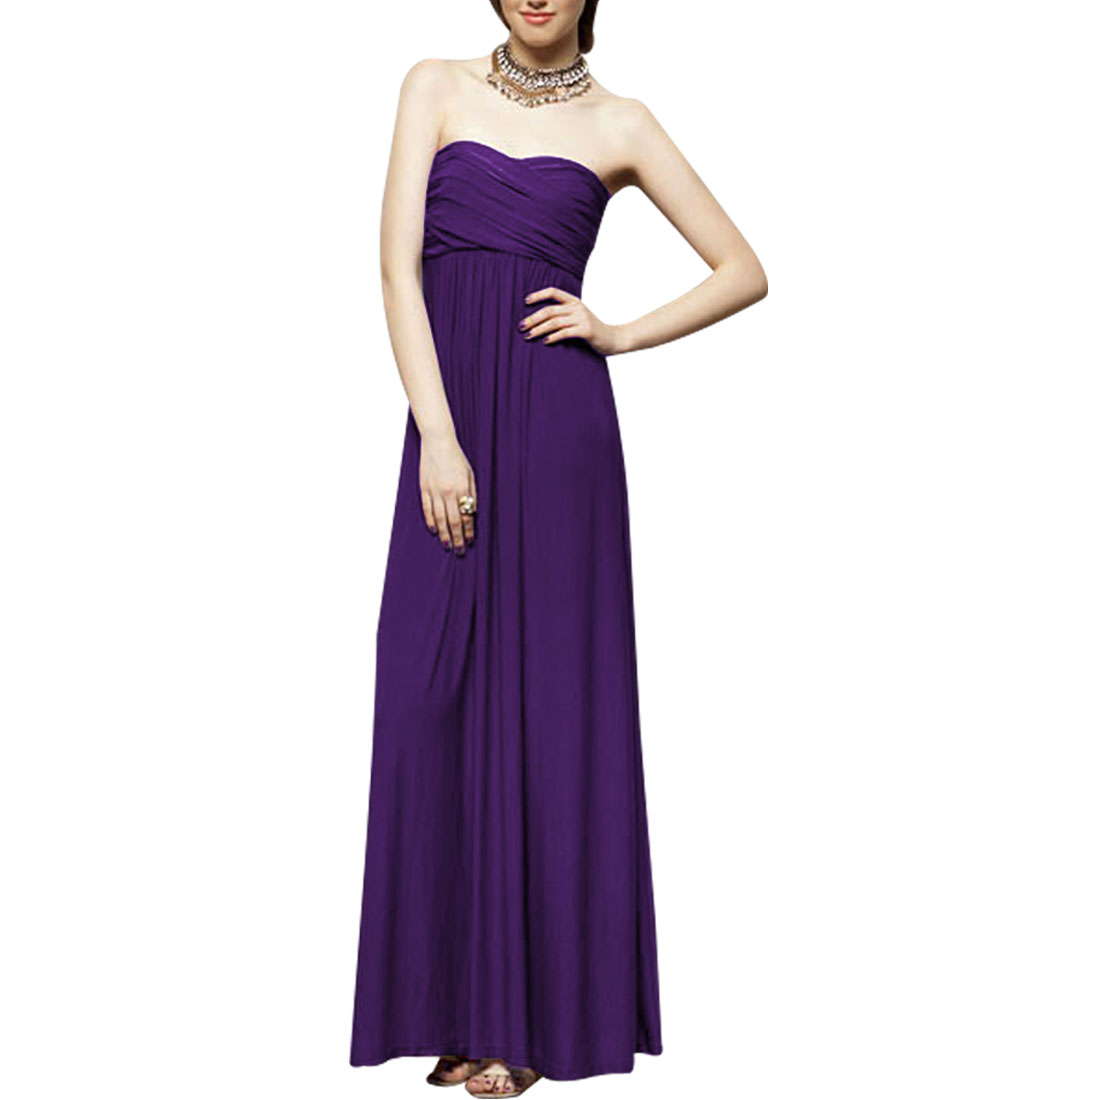 Strapless Cocktail Party Lining Full-length Zip up Dress Purple XS for Ladies